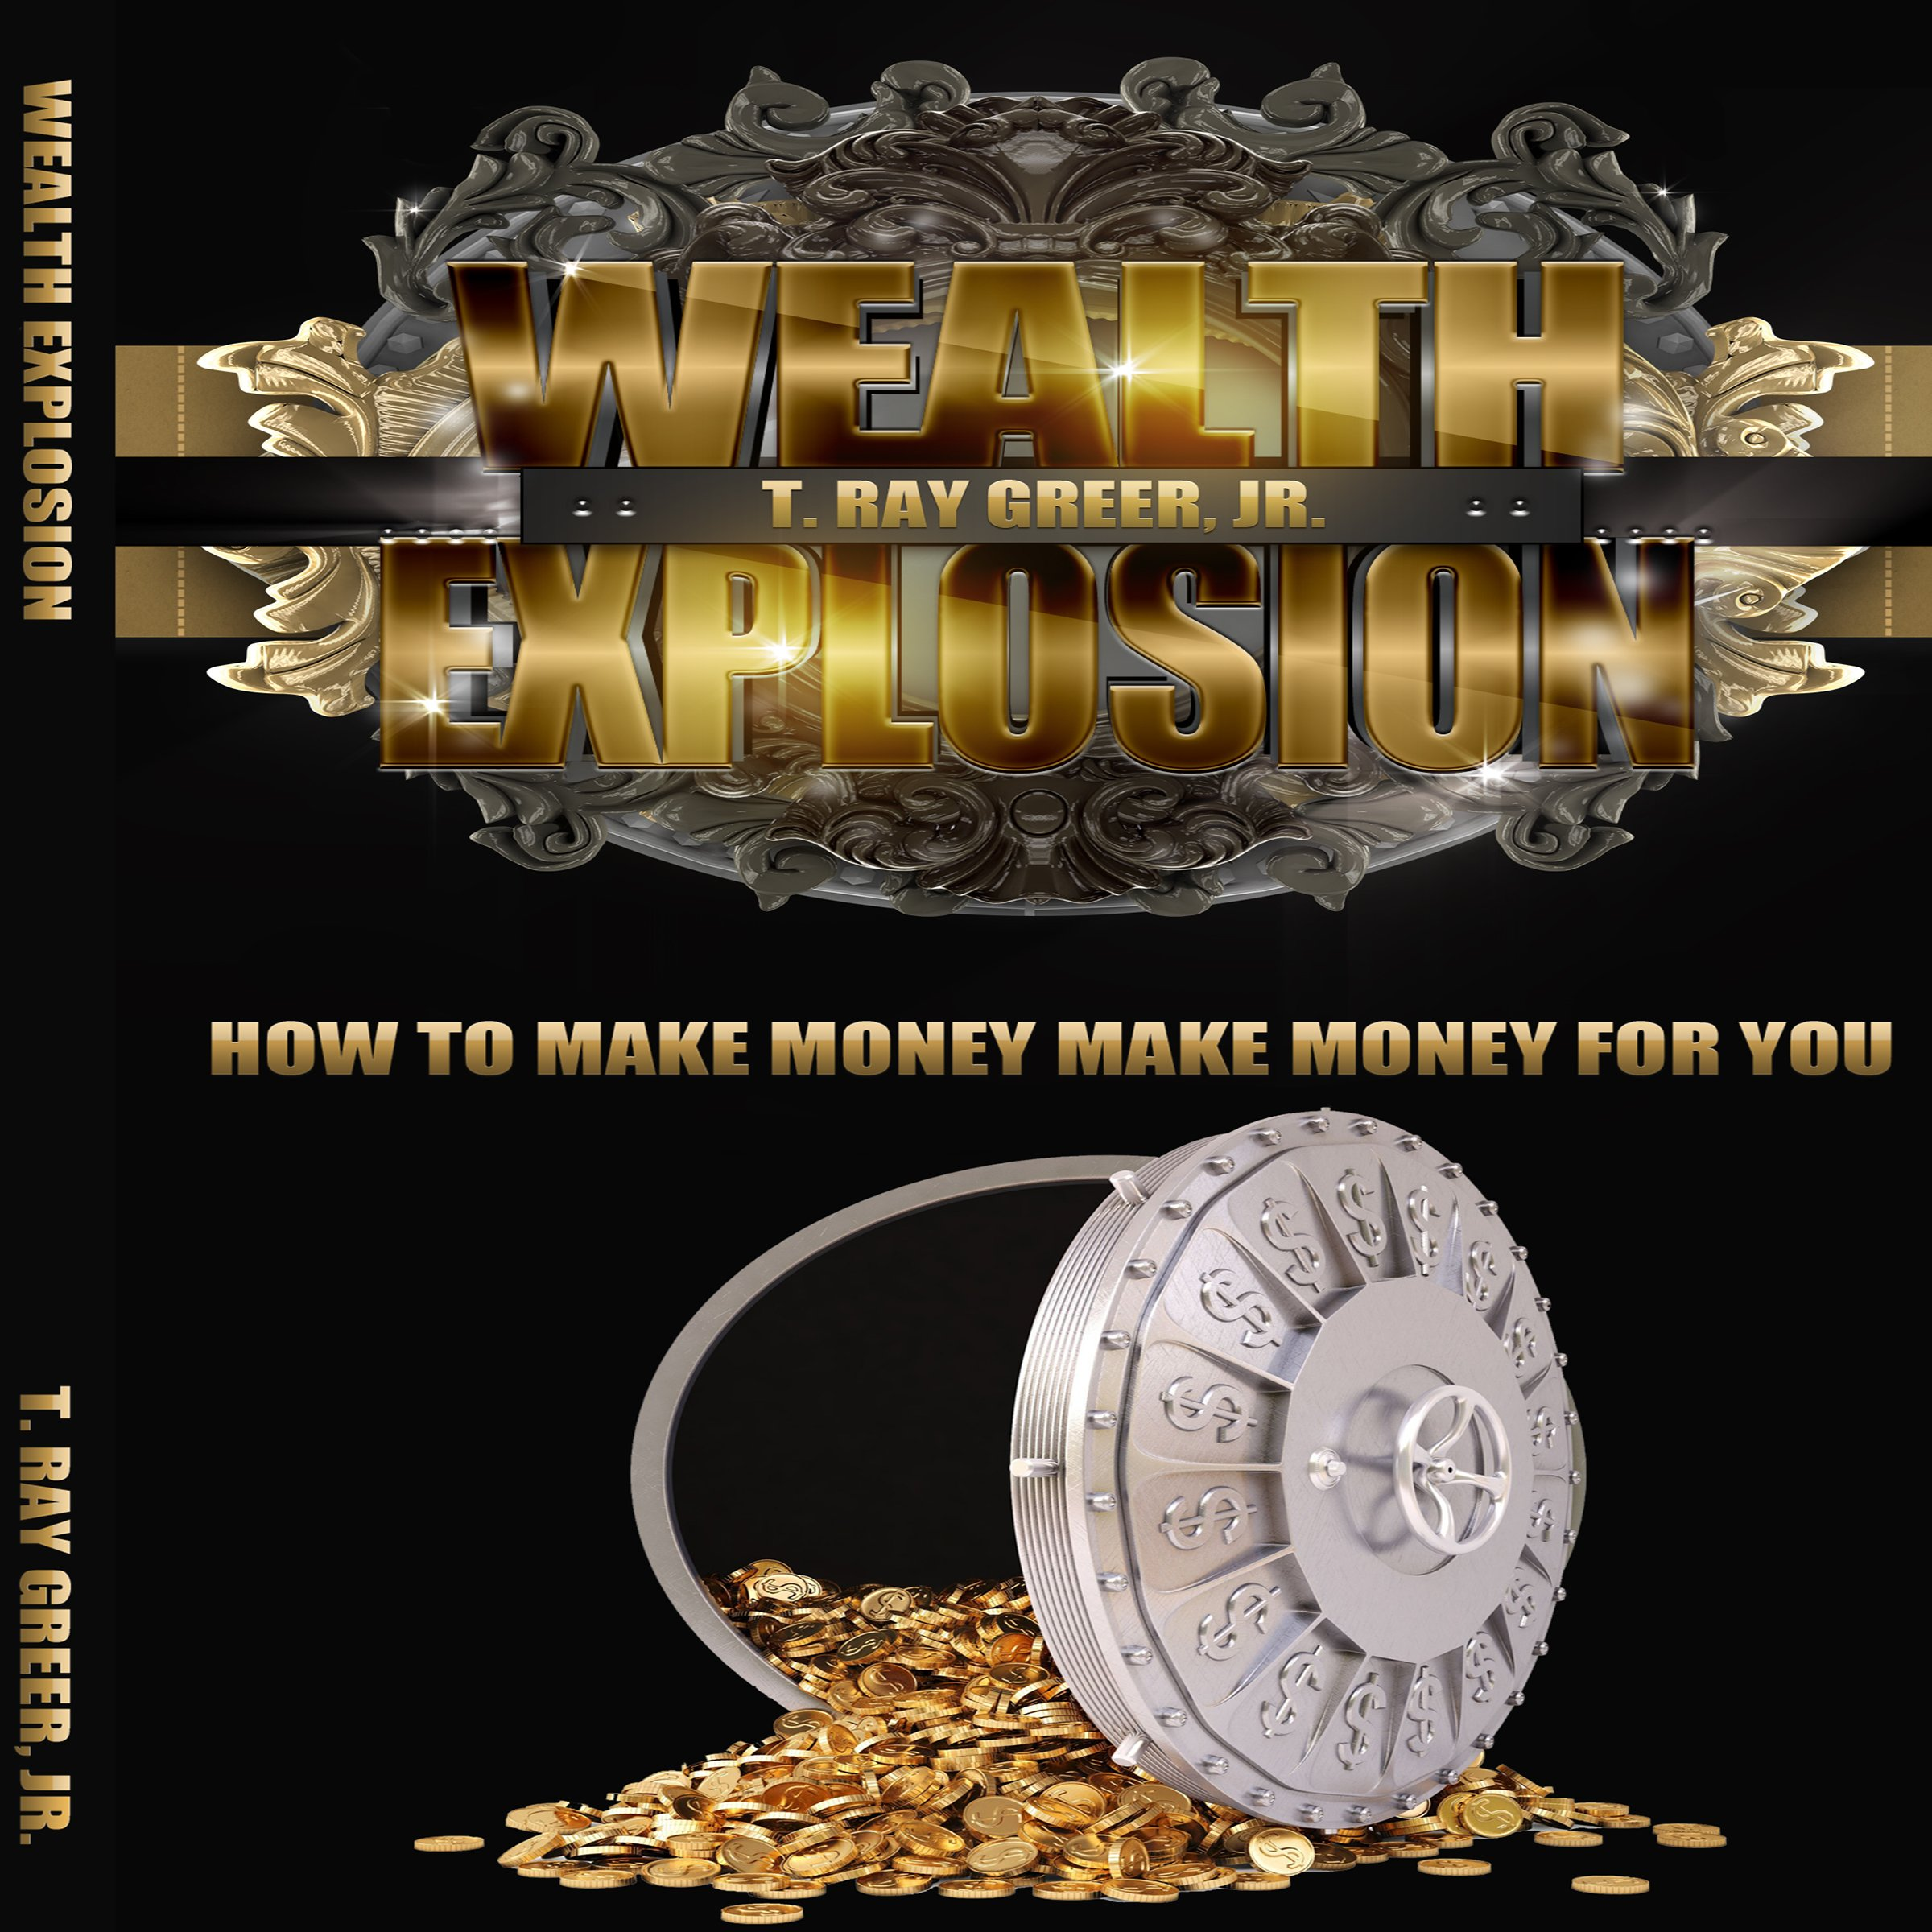 Wealth Explosion: How to Make Money Make Money for You!